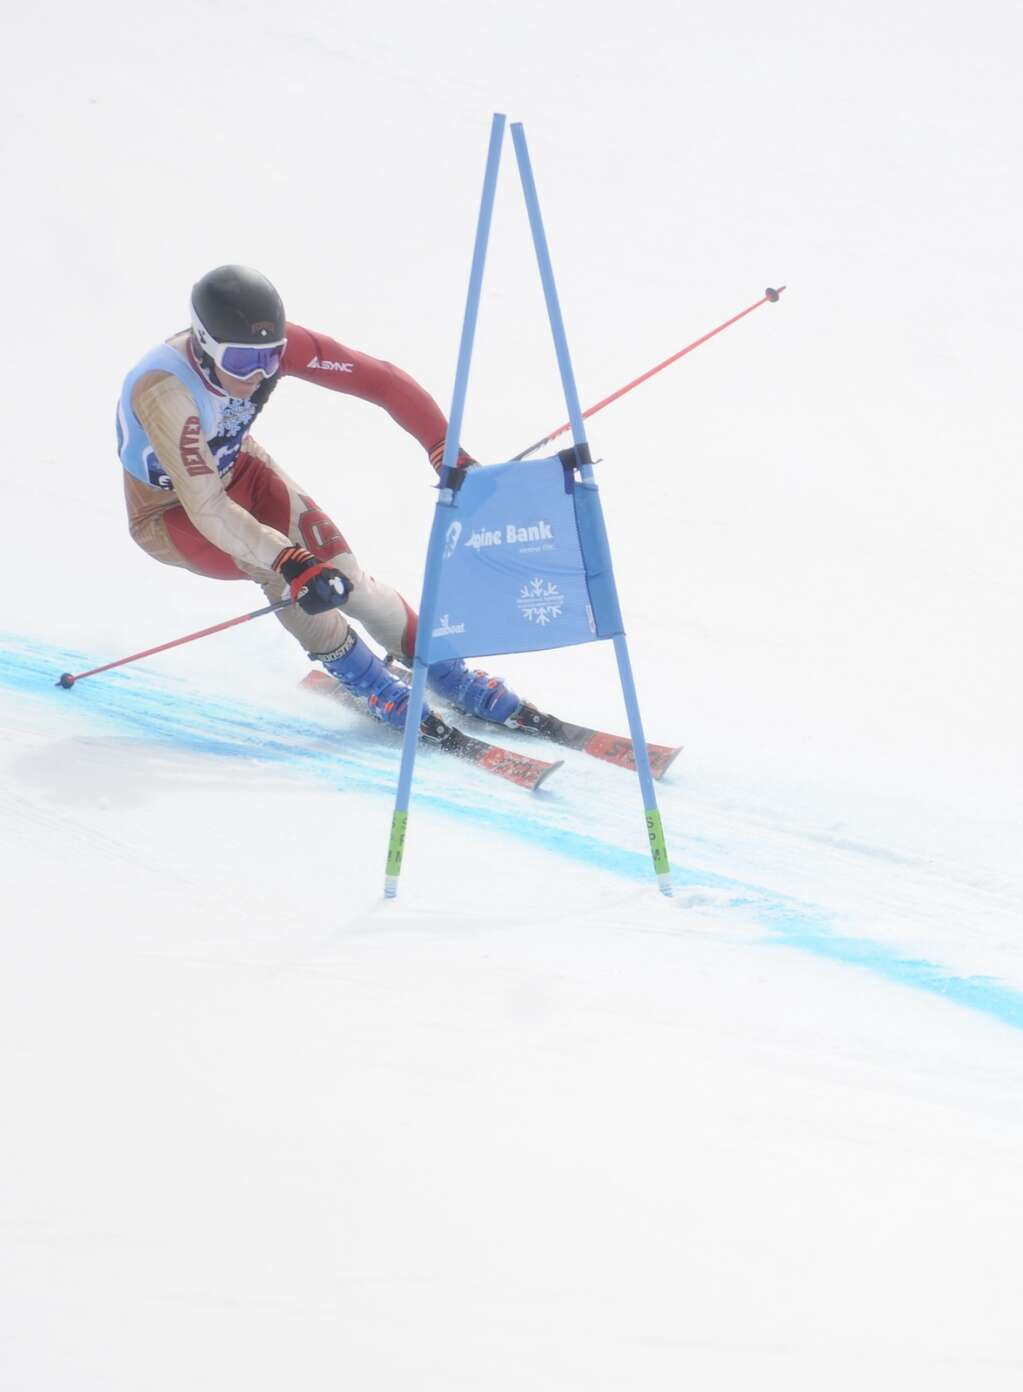 Steamboat Springs native and Denver University skier Cole Puckett competes in Giant Slalom race of the Spring Series at Steamboat Resort on Tuesday.